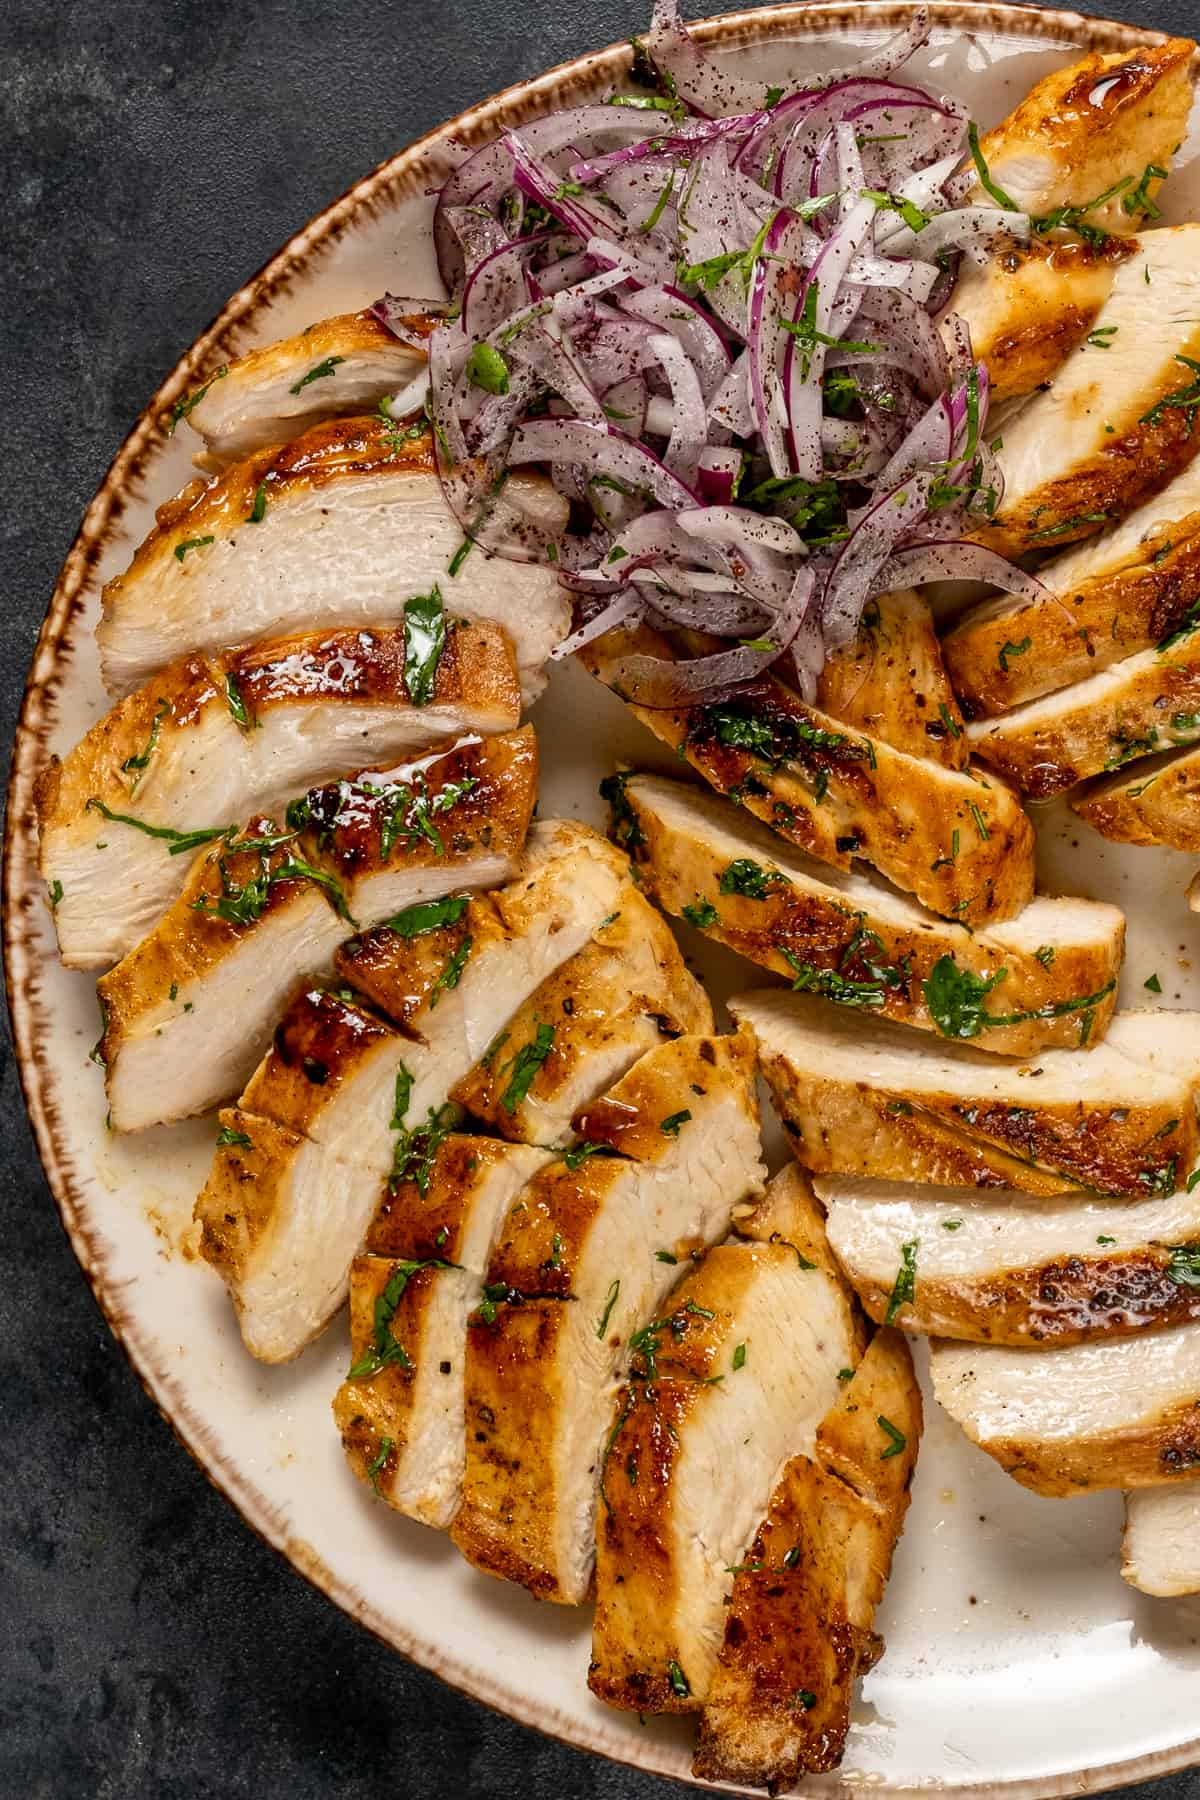 Cast iron pan cooked chicken breasts sliced and served with sumac onions on a plate.